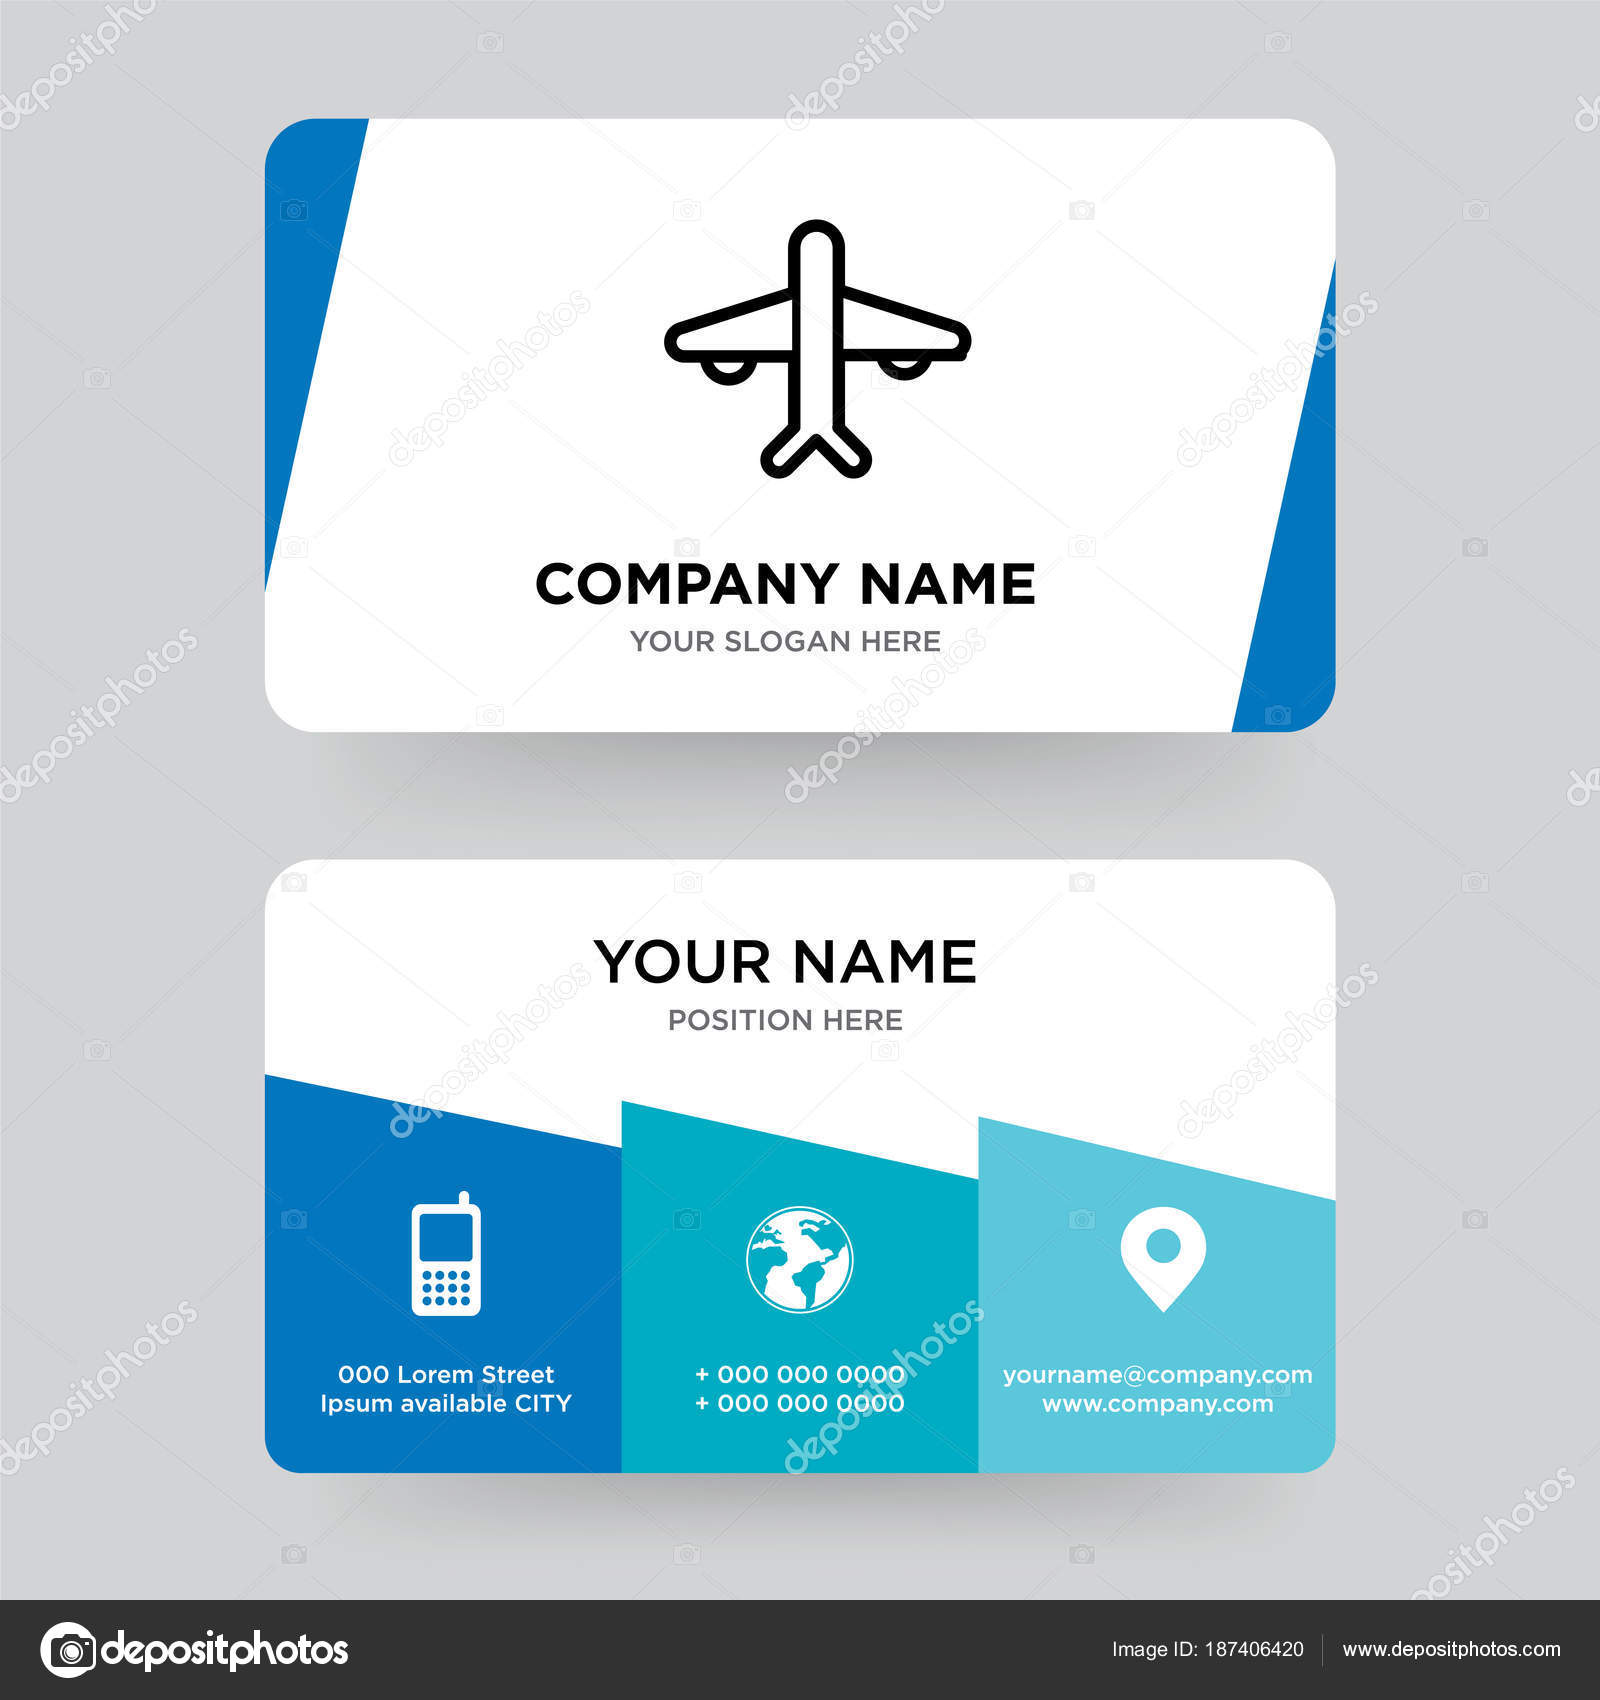 Airplane business card design template, Visiting for your compan ...